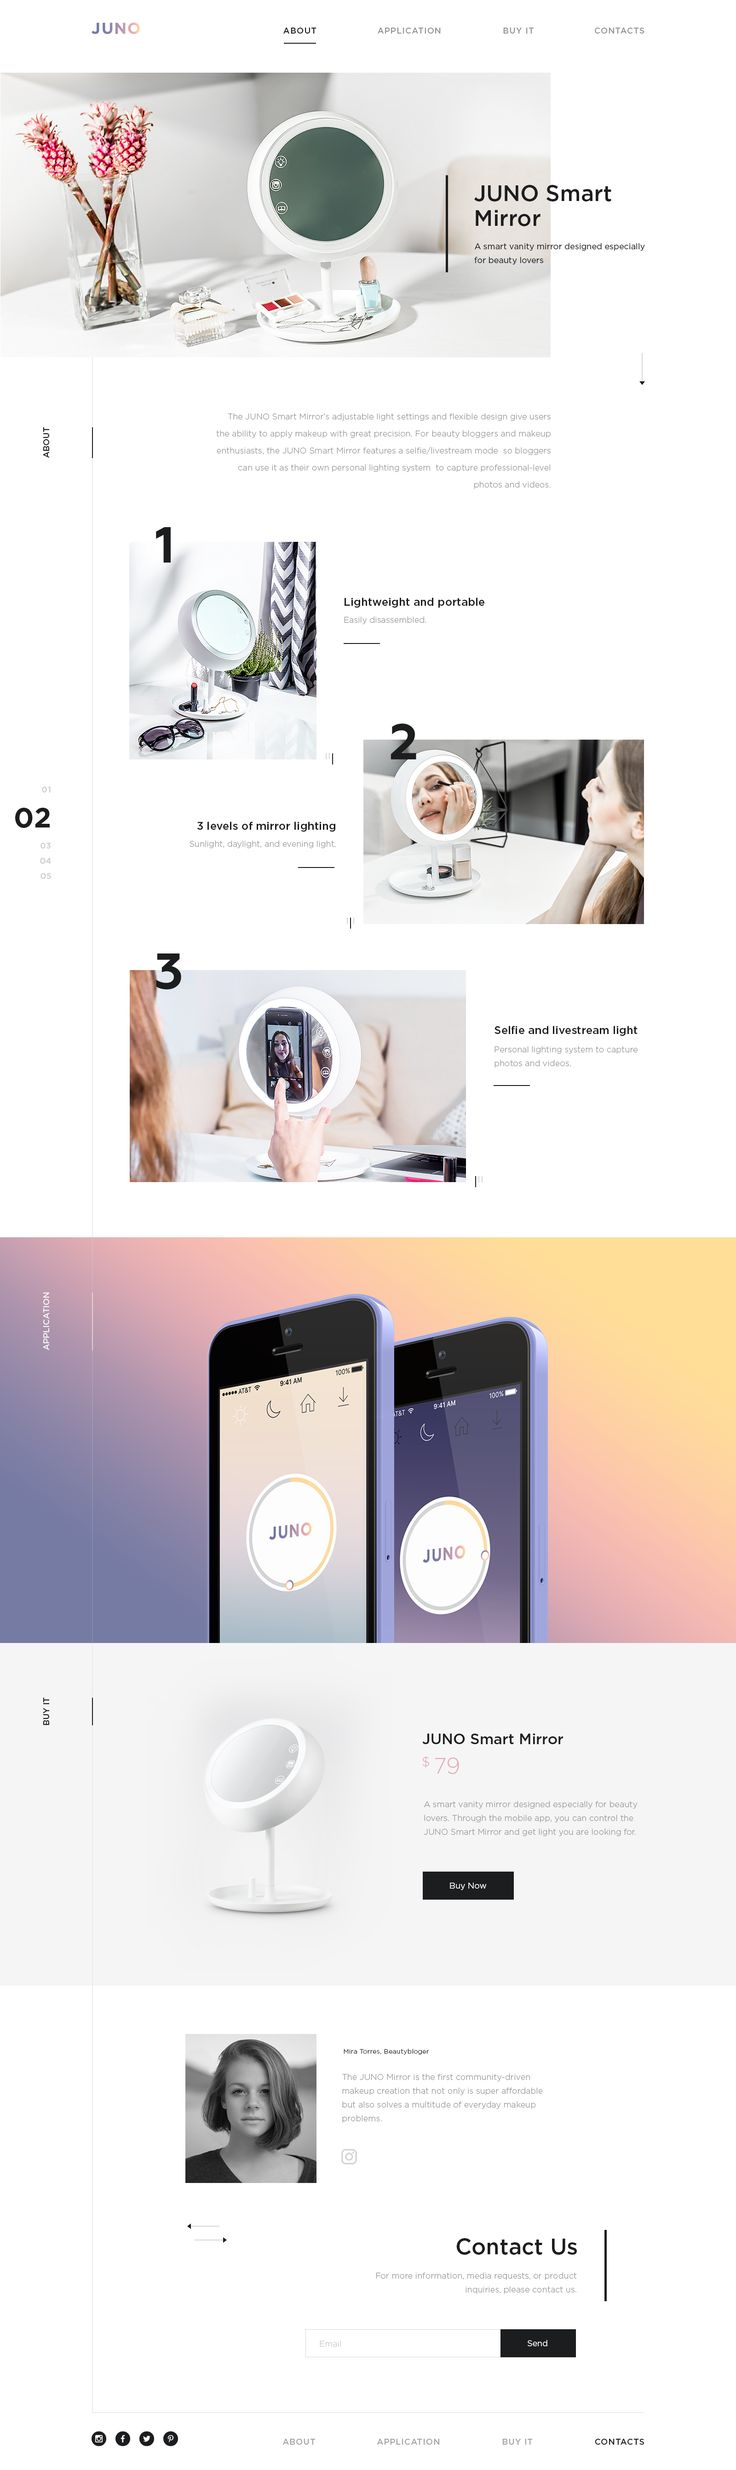 Single product landing page design